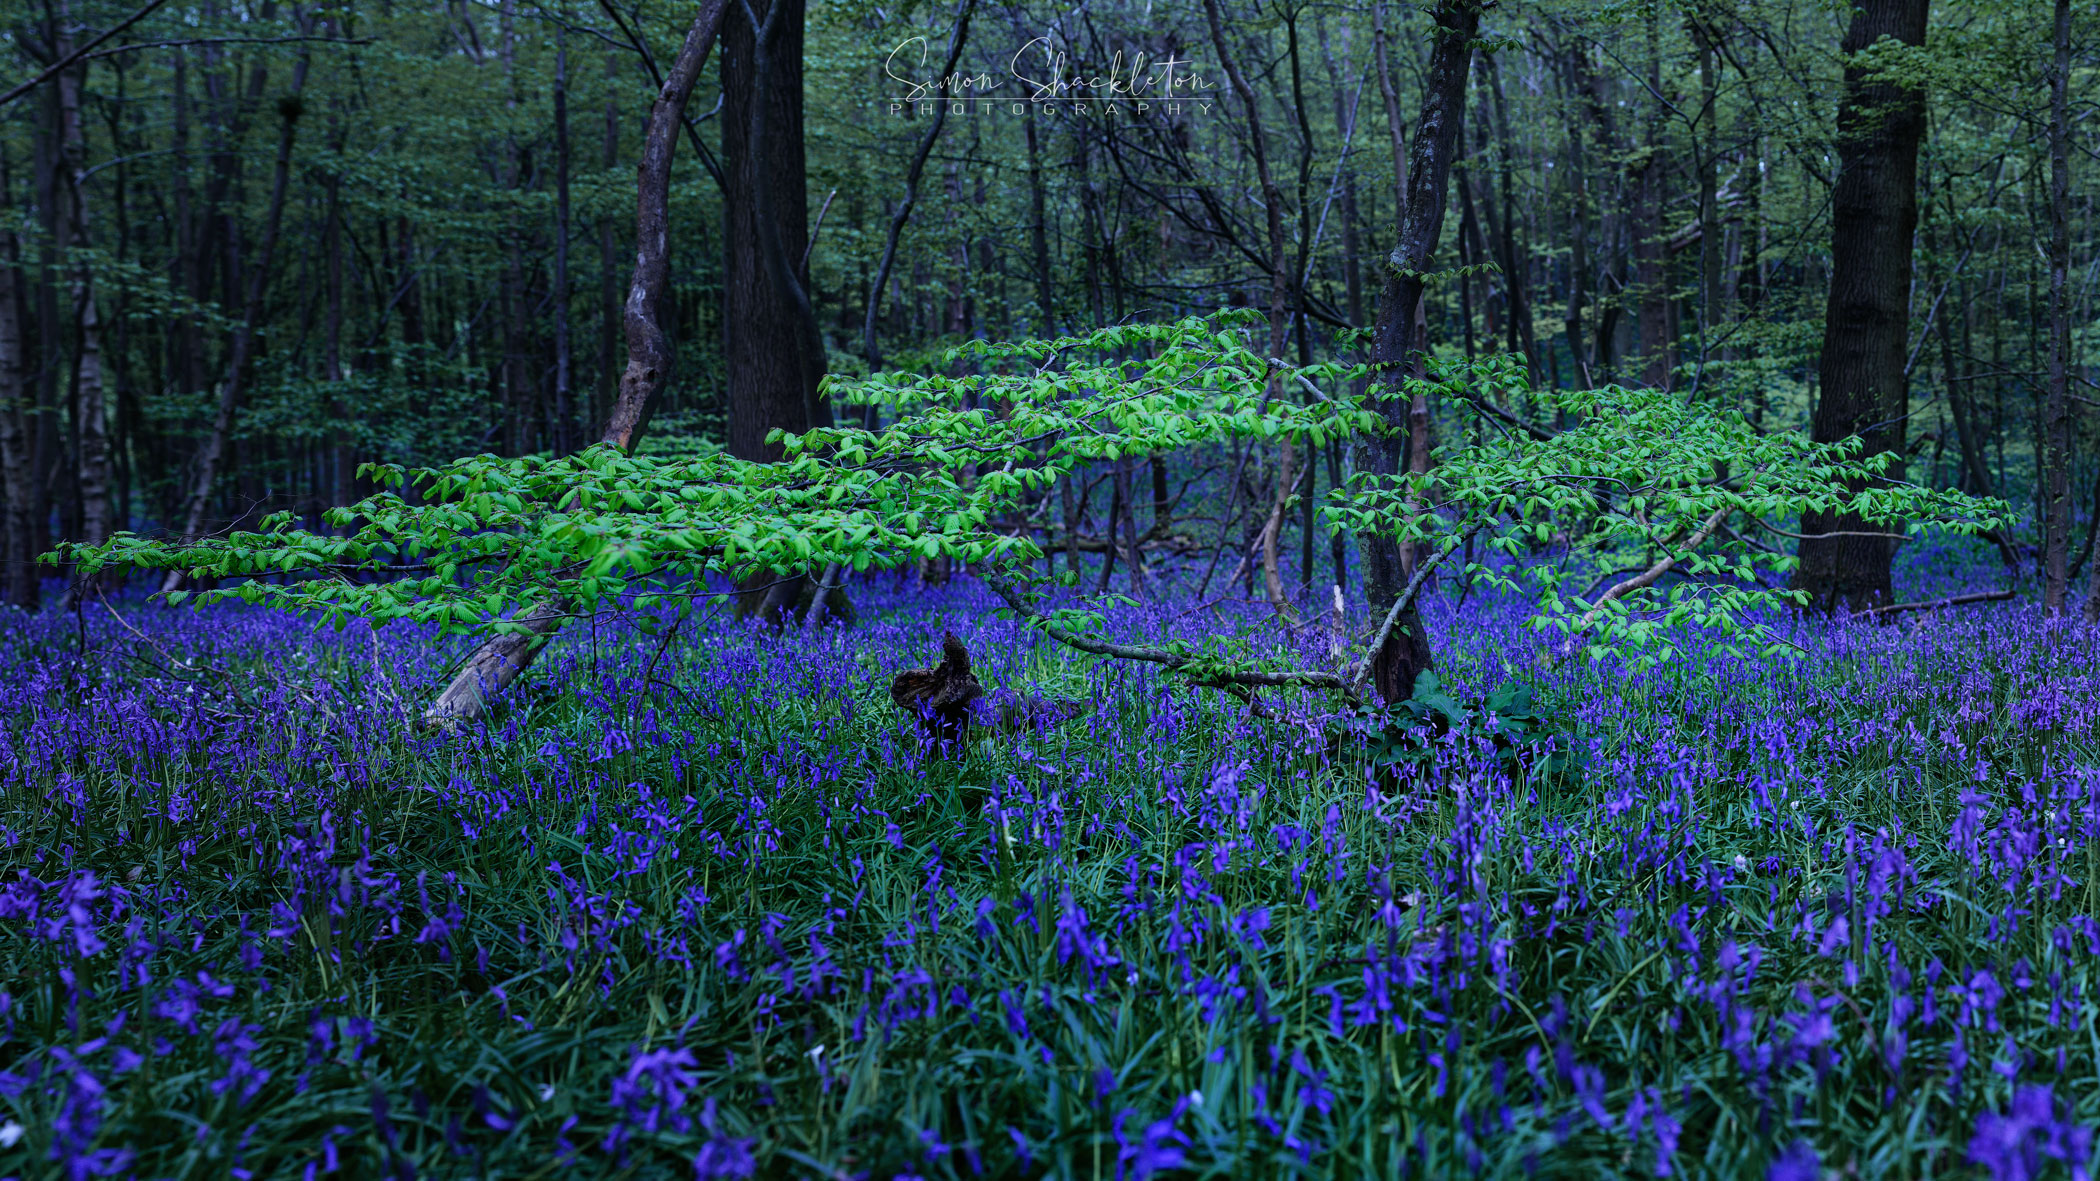 Bluebells at Blue Hour